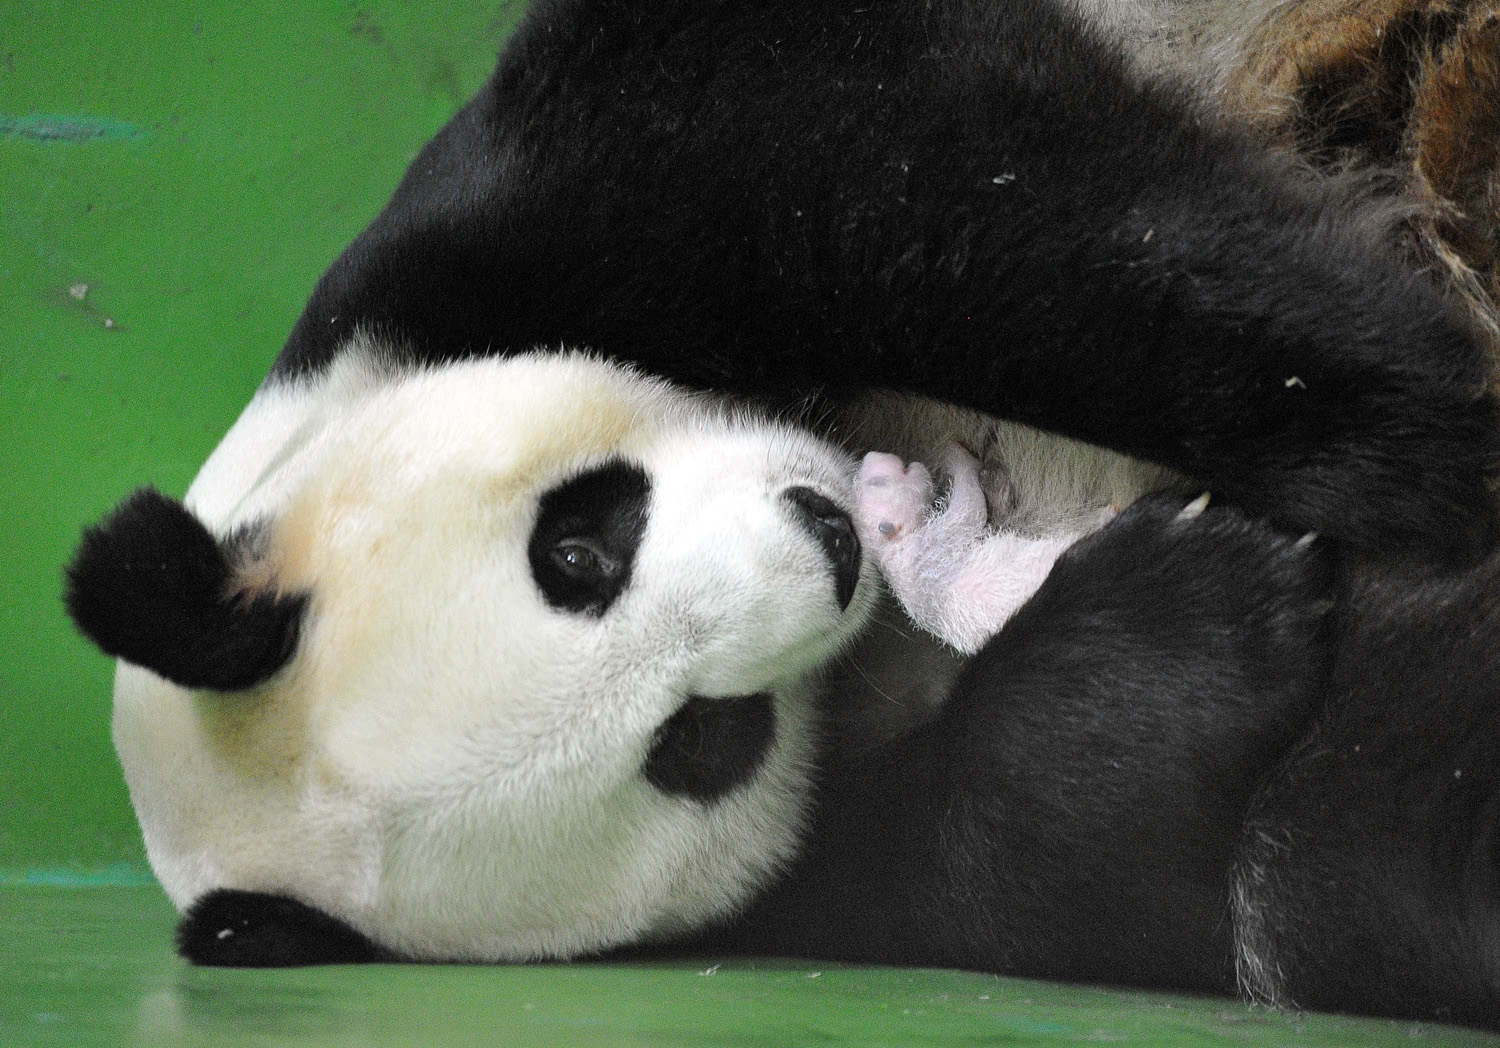 Giant panda  Ju Xiao  gave birth to three panda cubs on July 29, here she holds one of her panda cub's in her arms in Guangzhou, China on August 10, 2014.